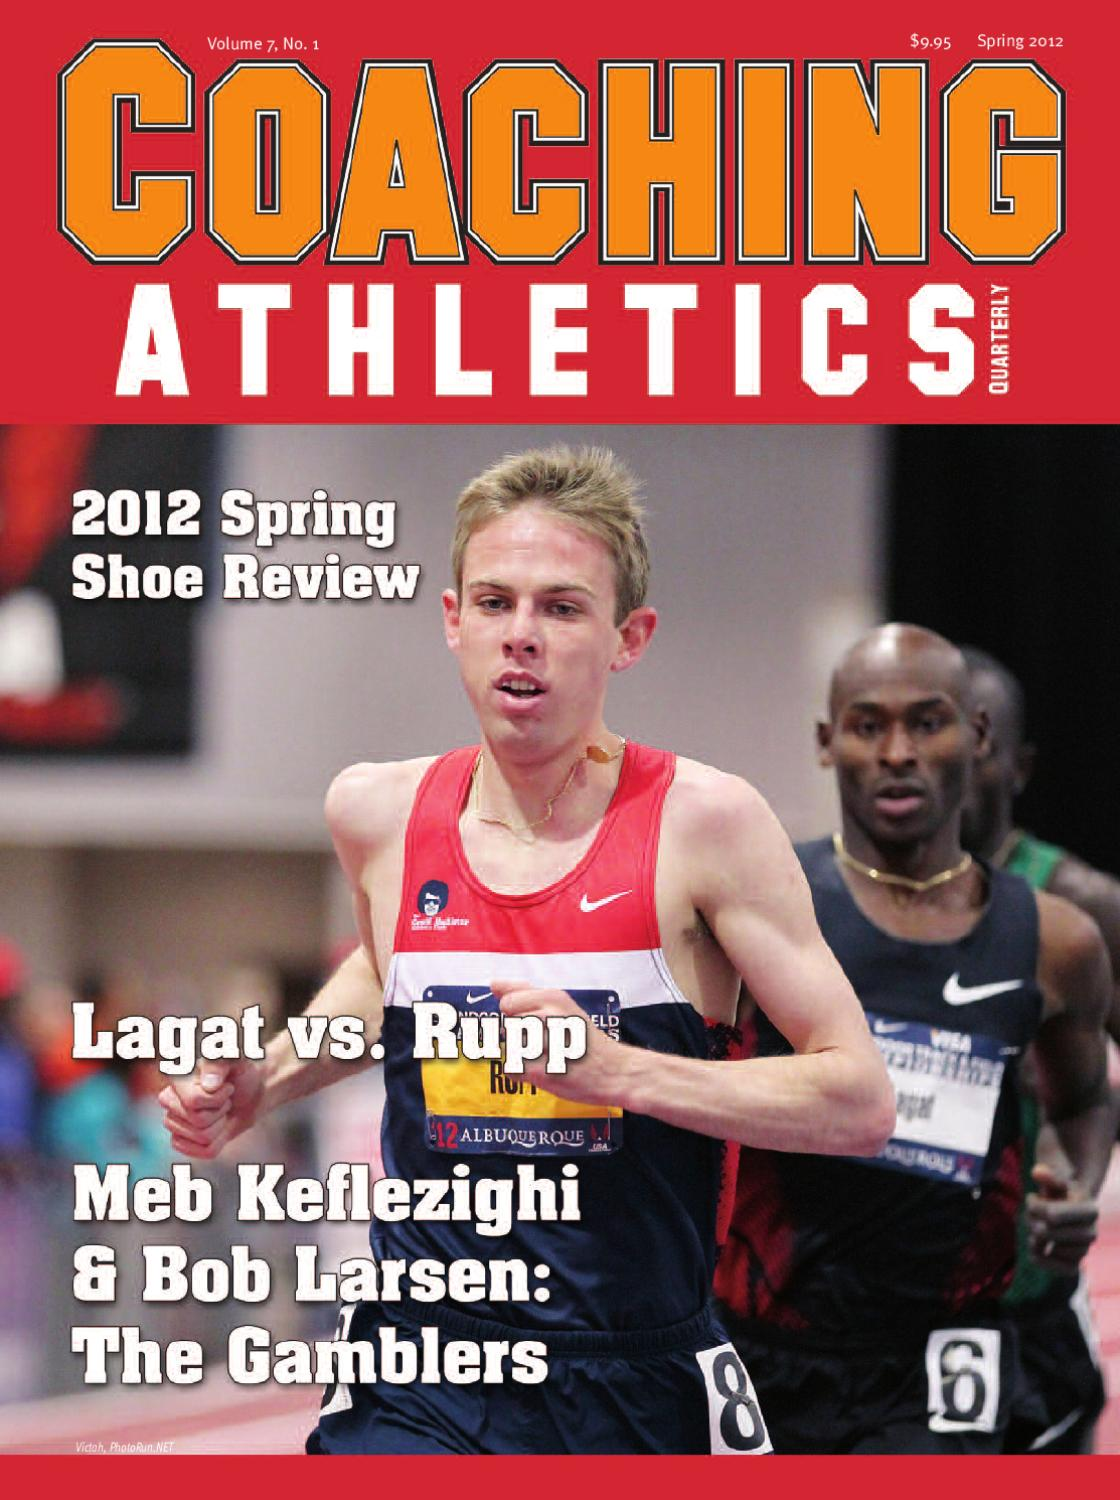 ecfba720ff07a CA-Spring12 by Fortius Media Group LLC (Running Network) - issuu